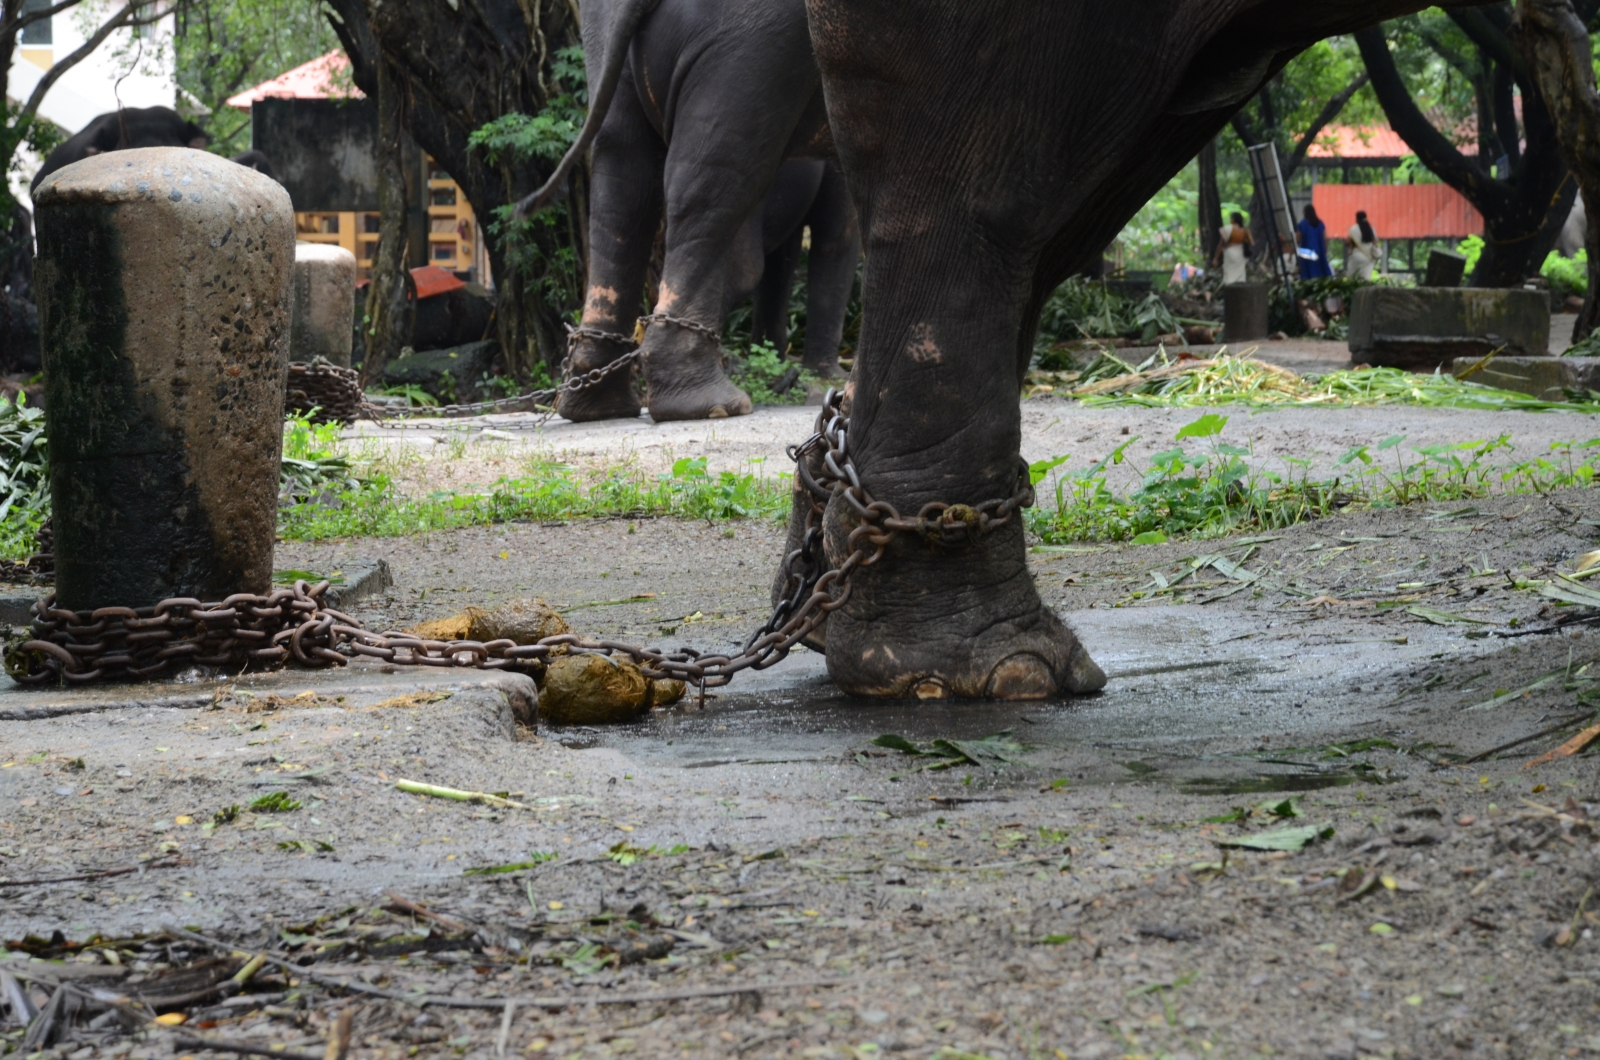 An elephant chained by the leg